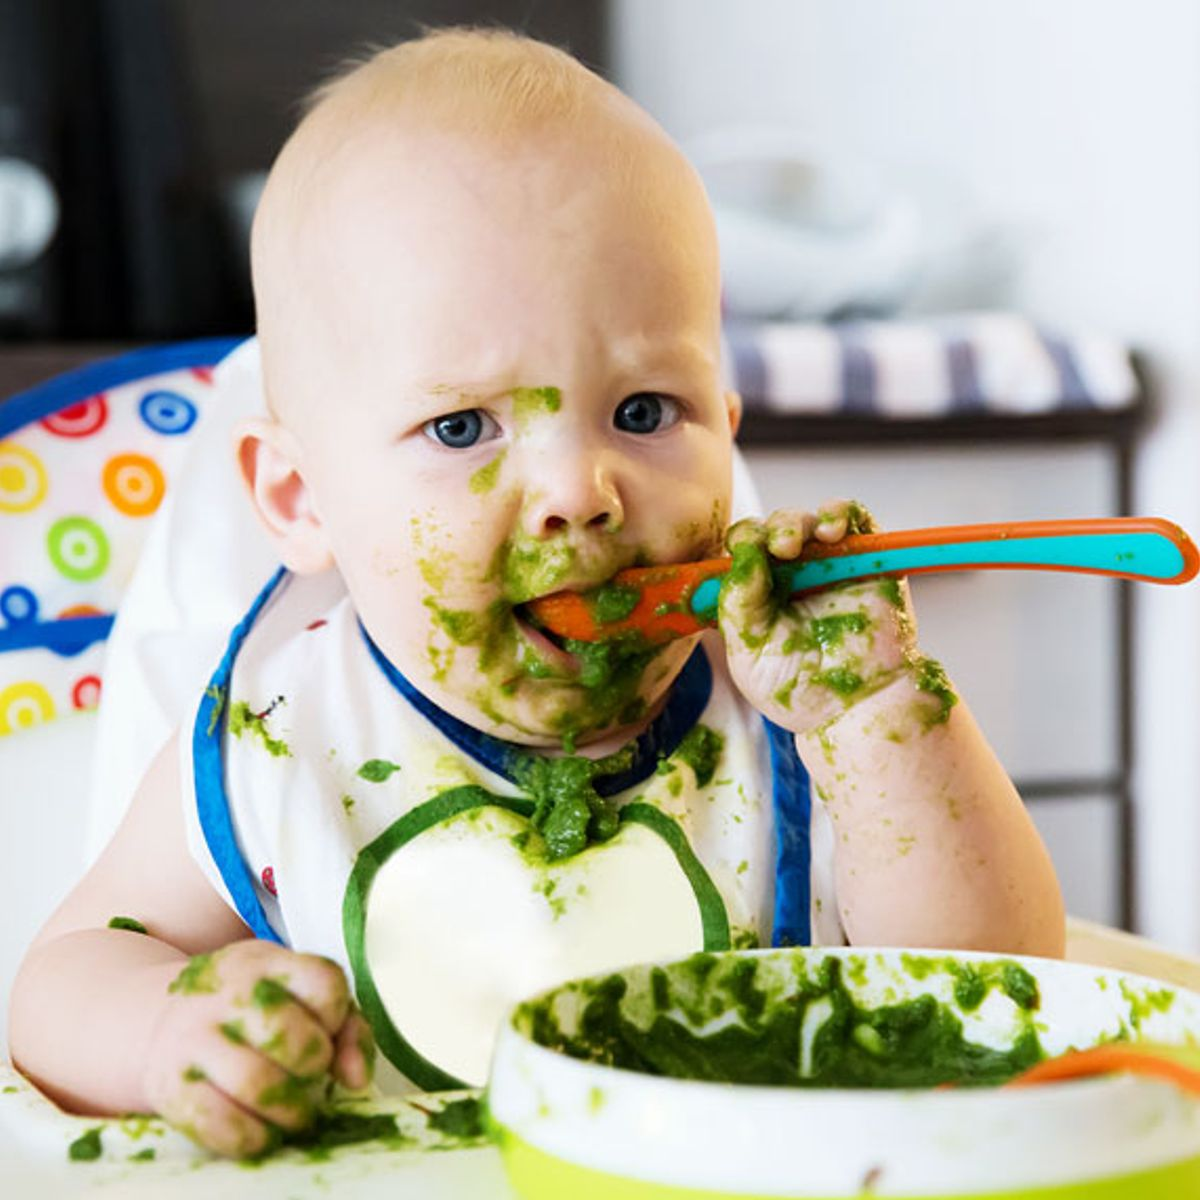 95 percent of baby foods tested contain toxic metals that could harm brain development, study finds